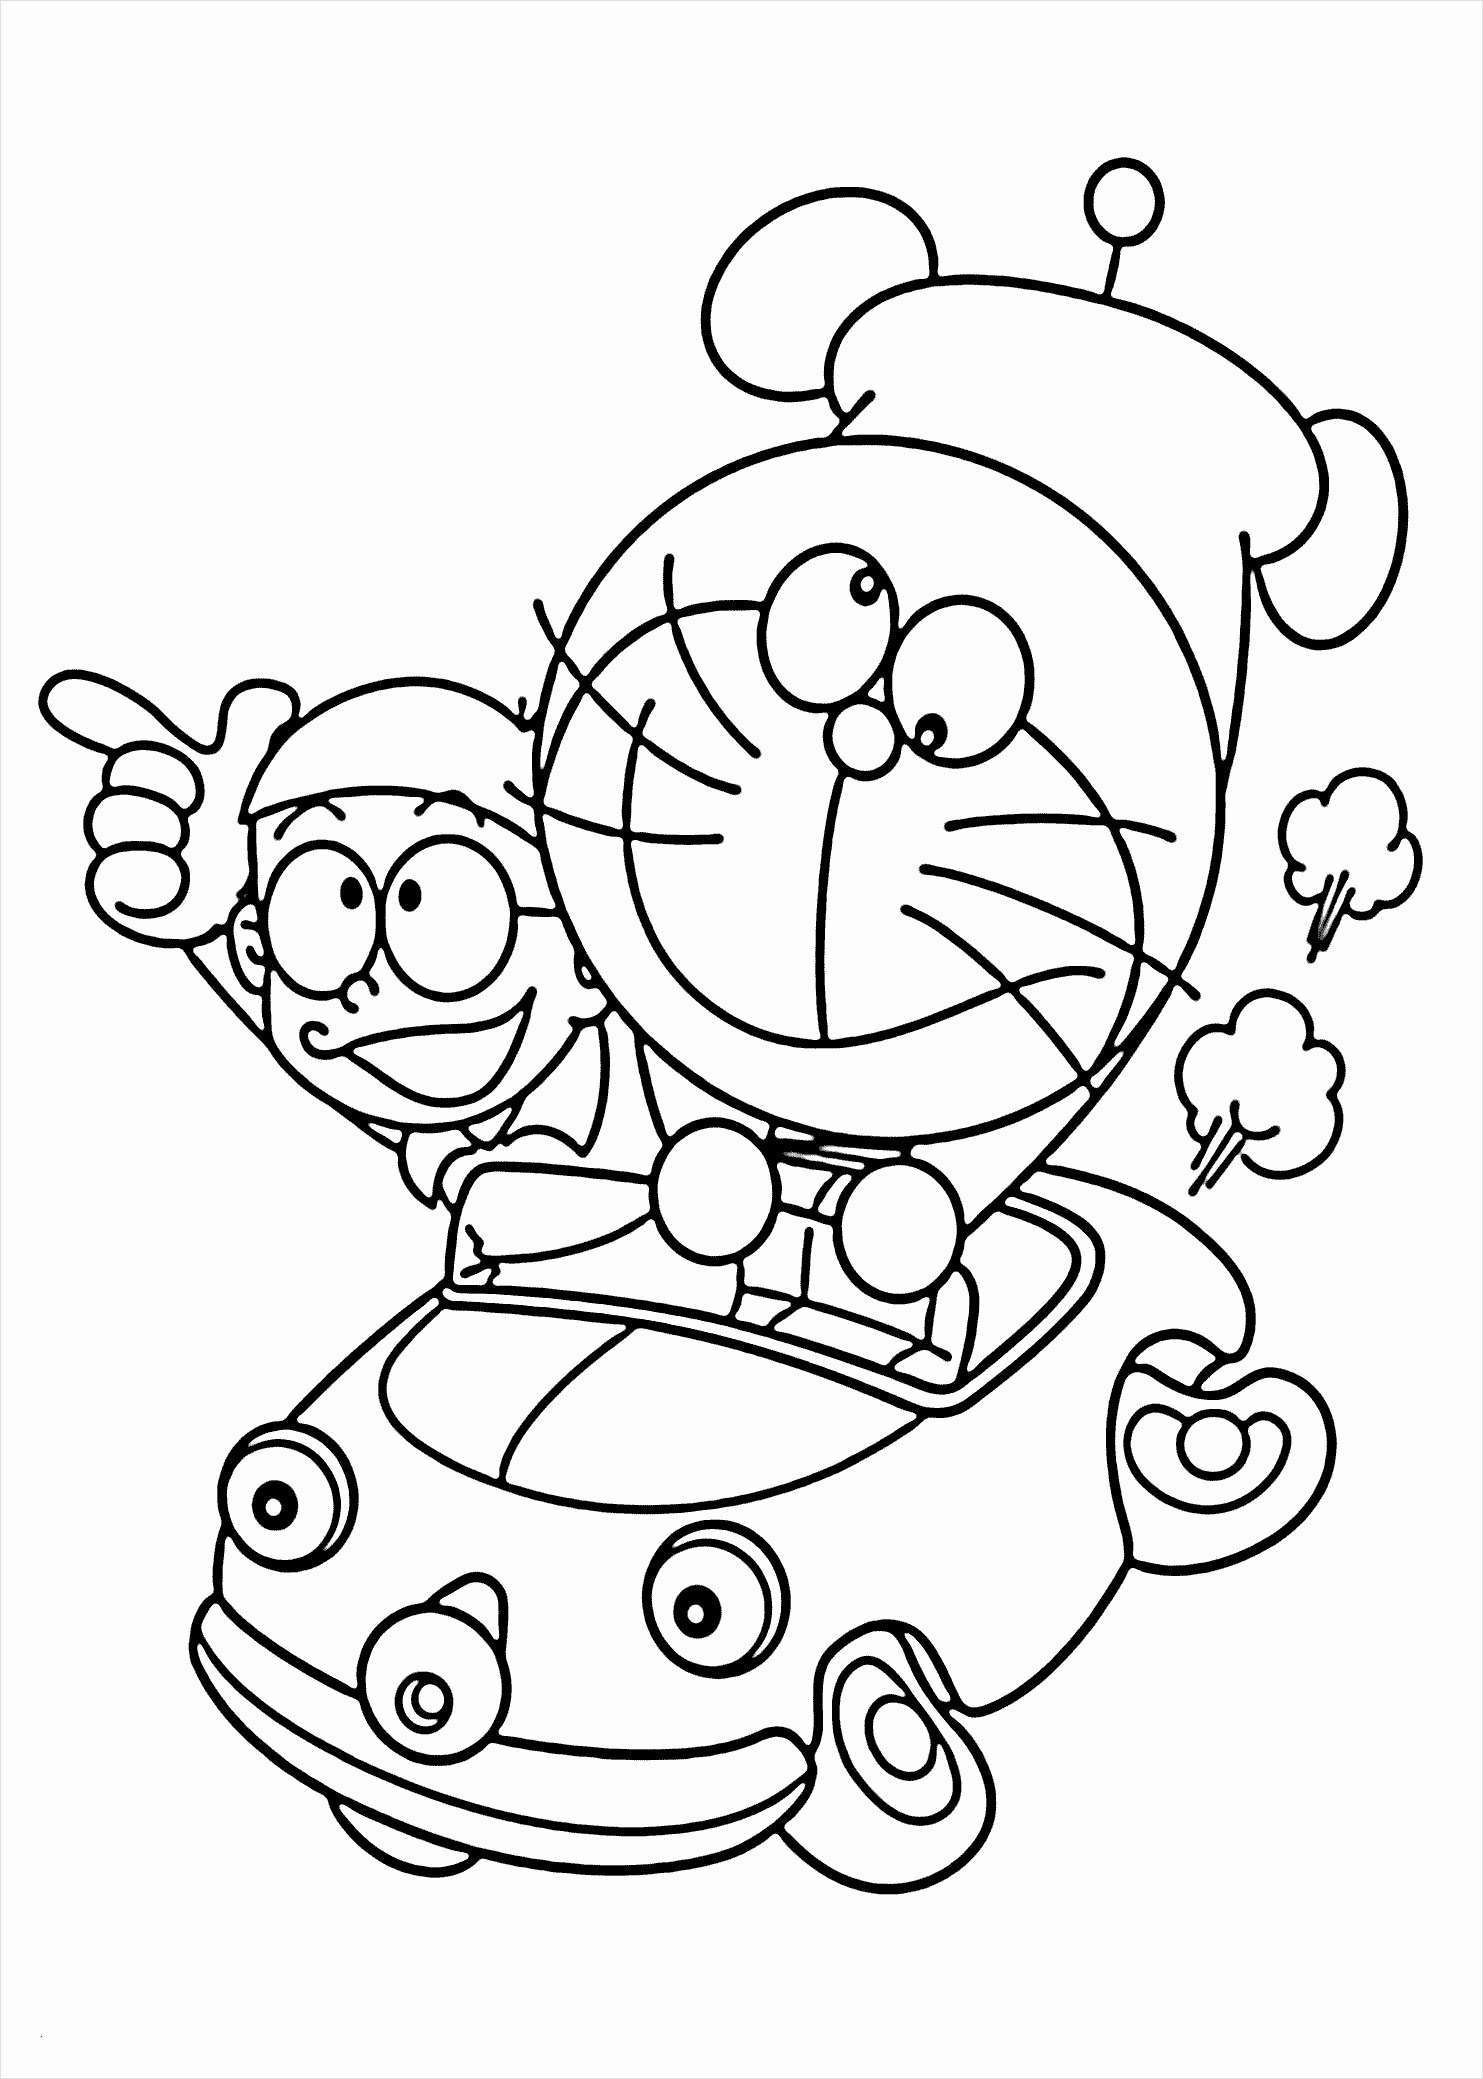 Christmas Coloring Pages Jesus With Printable Santa Claus Face 21